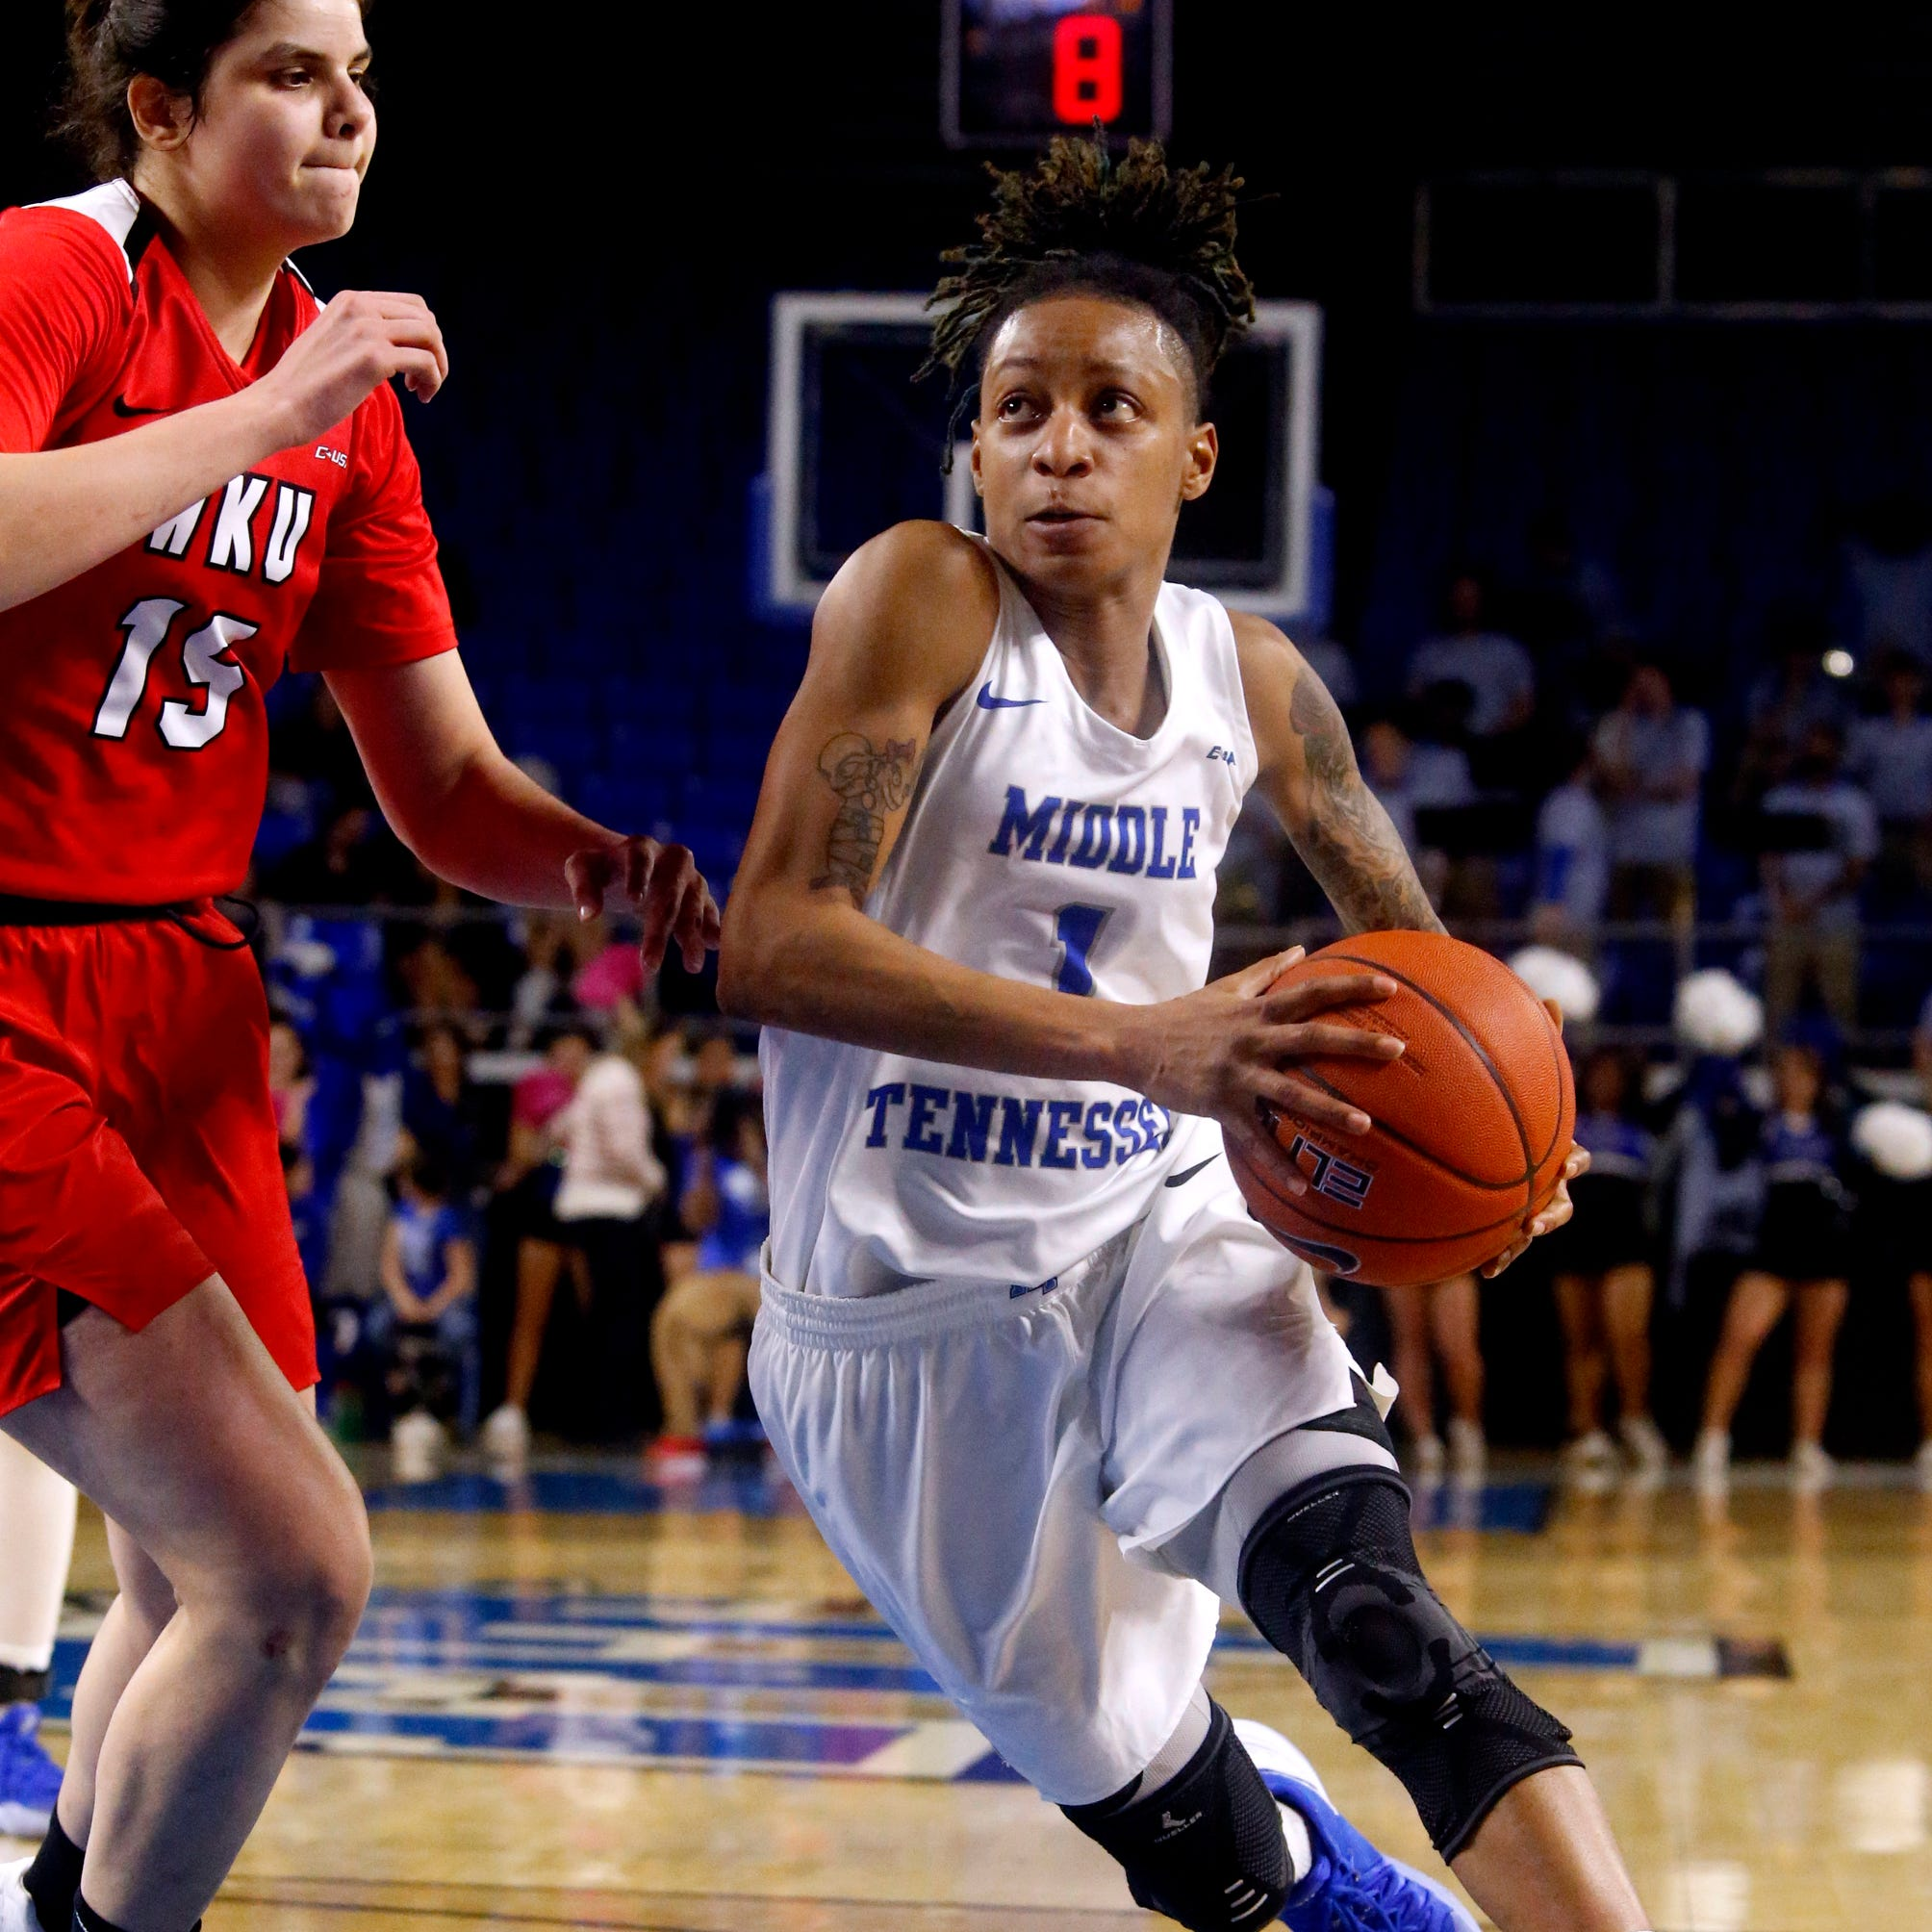 Lady Raiders defeat UAB and advance to Conference USA championship game